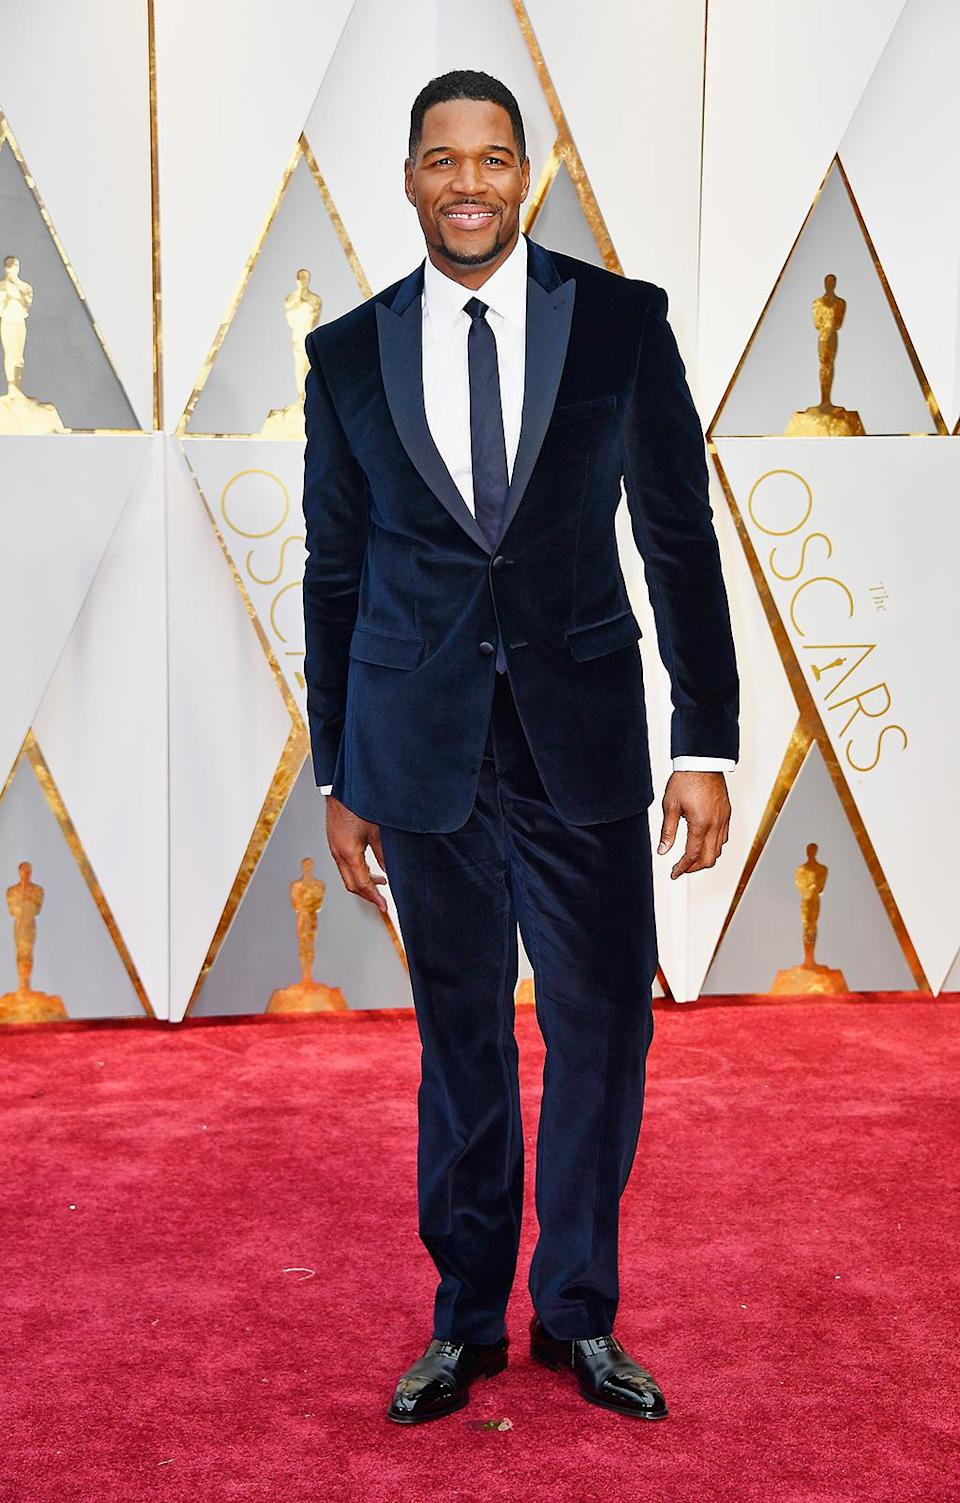 <p>TV personality Michael Strahan attends the 89th Annual Academy Awards at Hollywood & Highland Center on February 26, 2017 in Hollywood, California. (Photo by Frazer Harrison/Getty Images) </p>